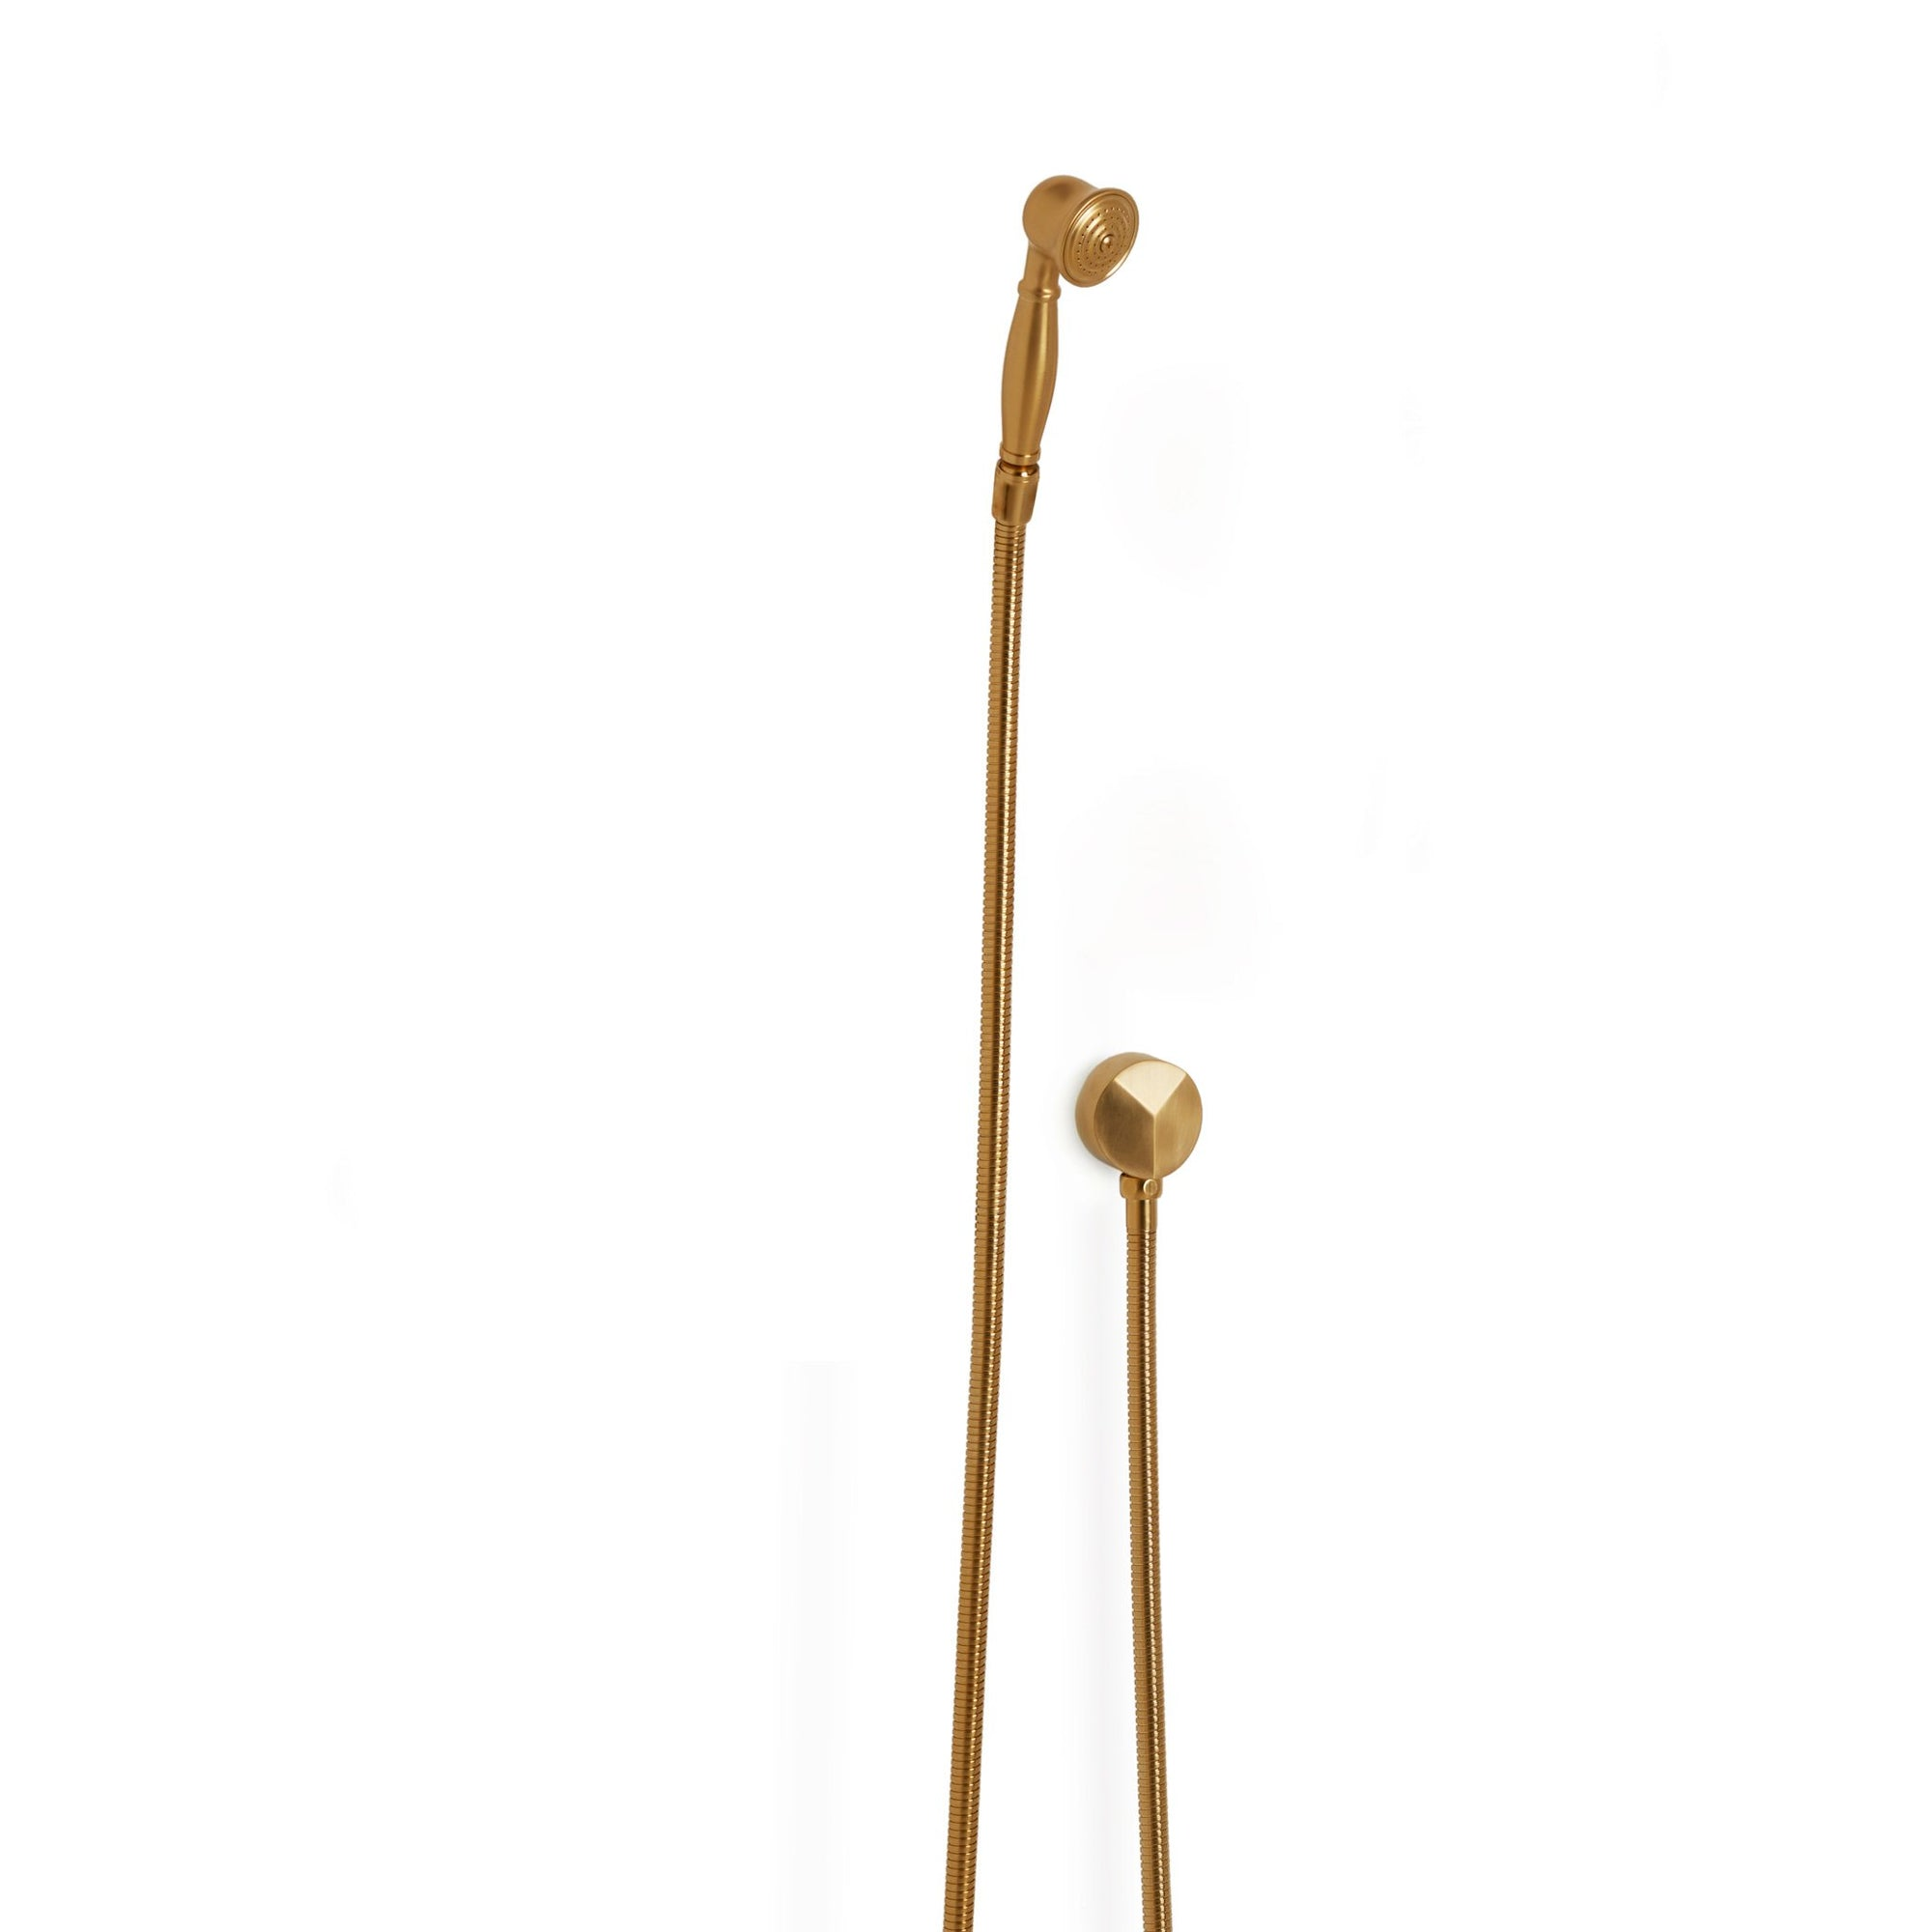 0836SPLY-GP Sherle Wagner International Classical Hand Shower with Hose and 90 Degree Supply in Gold Plate metal finish